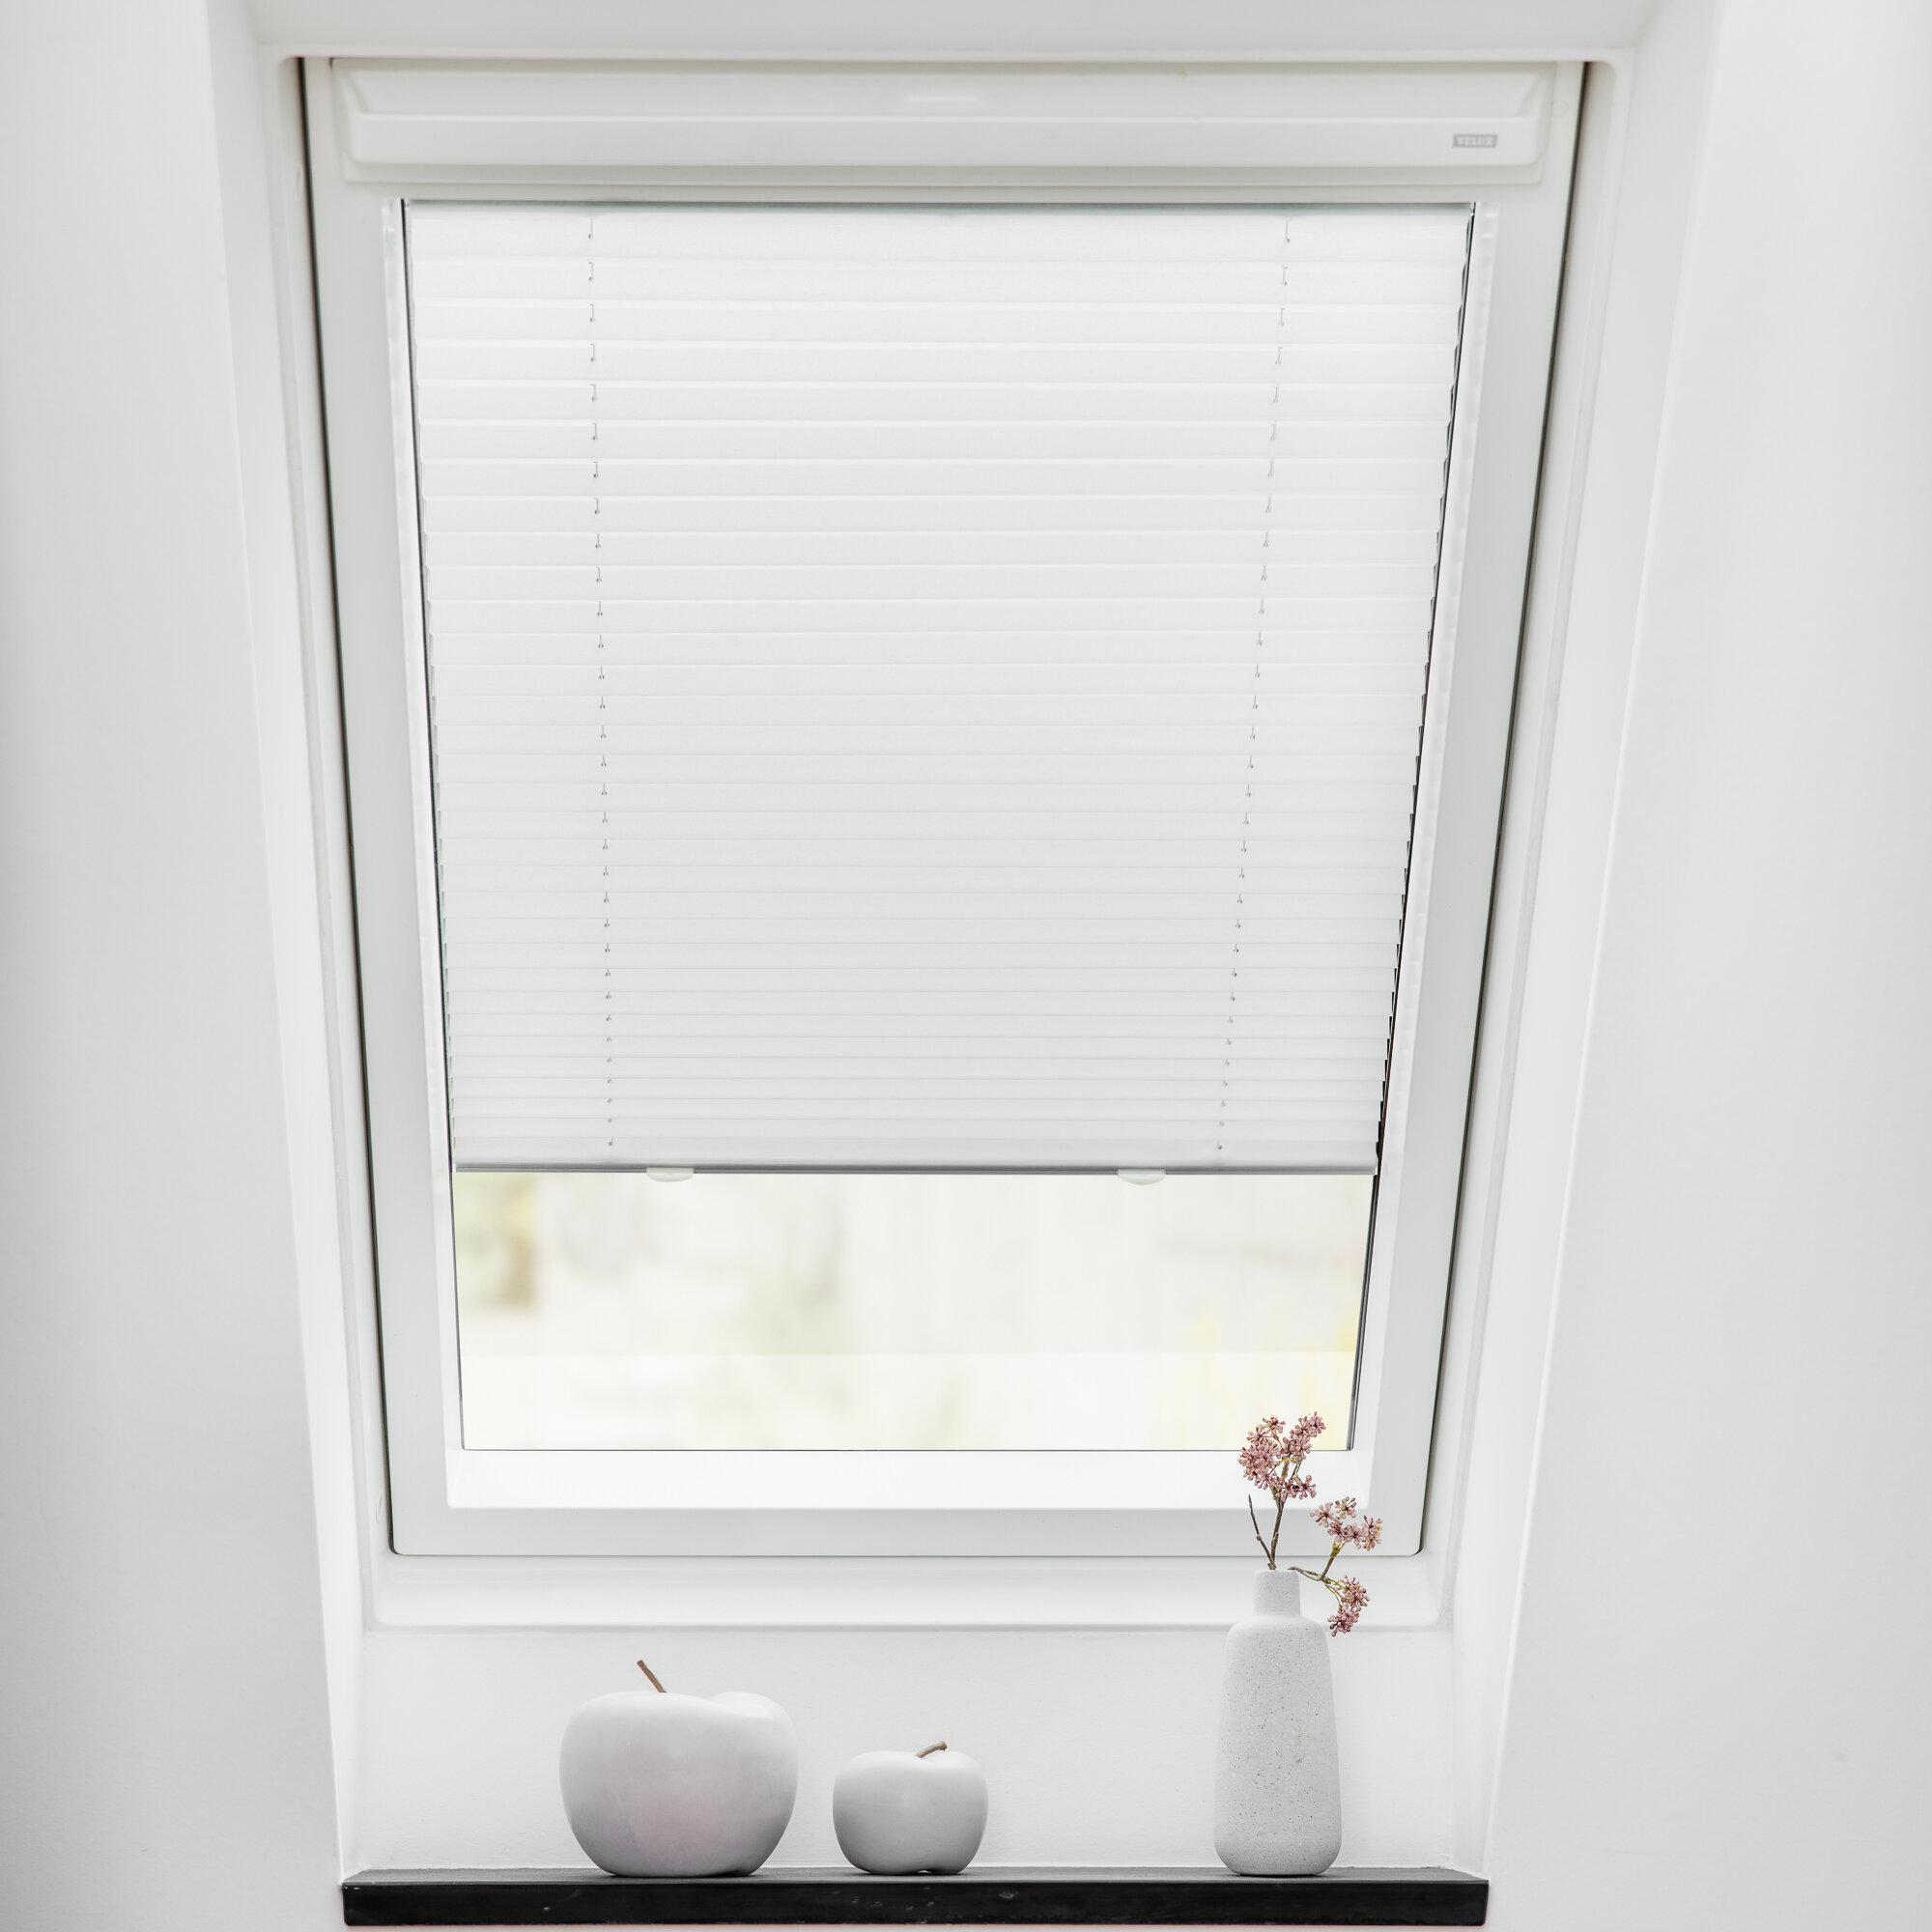 Favorit ClearAmbient Dachfenster Plissee Haftfix & Bewertungen | Wayfair.de MQ75